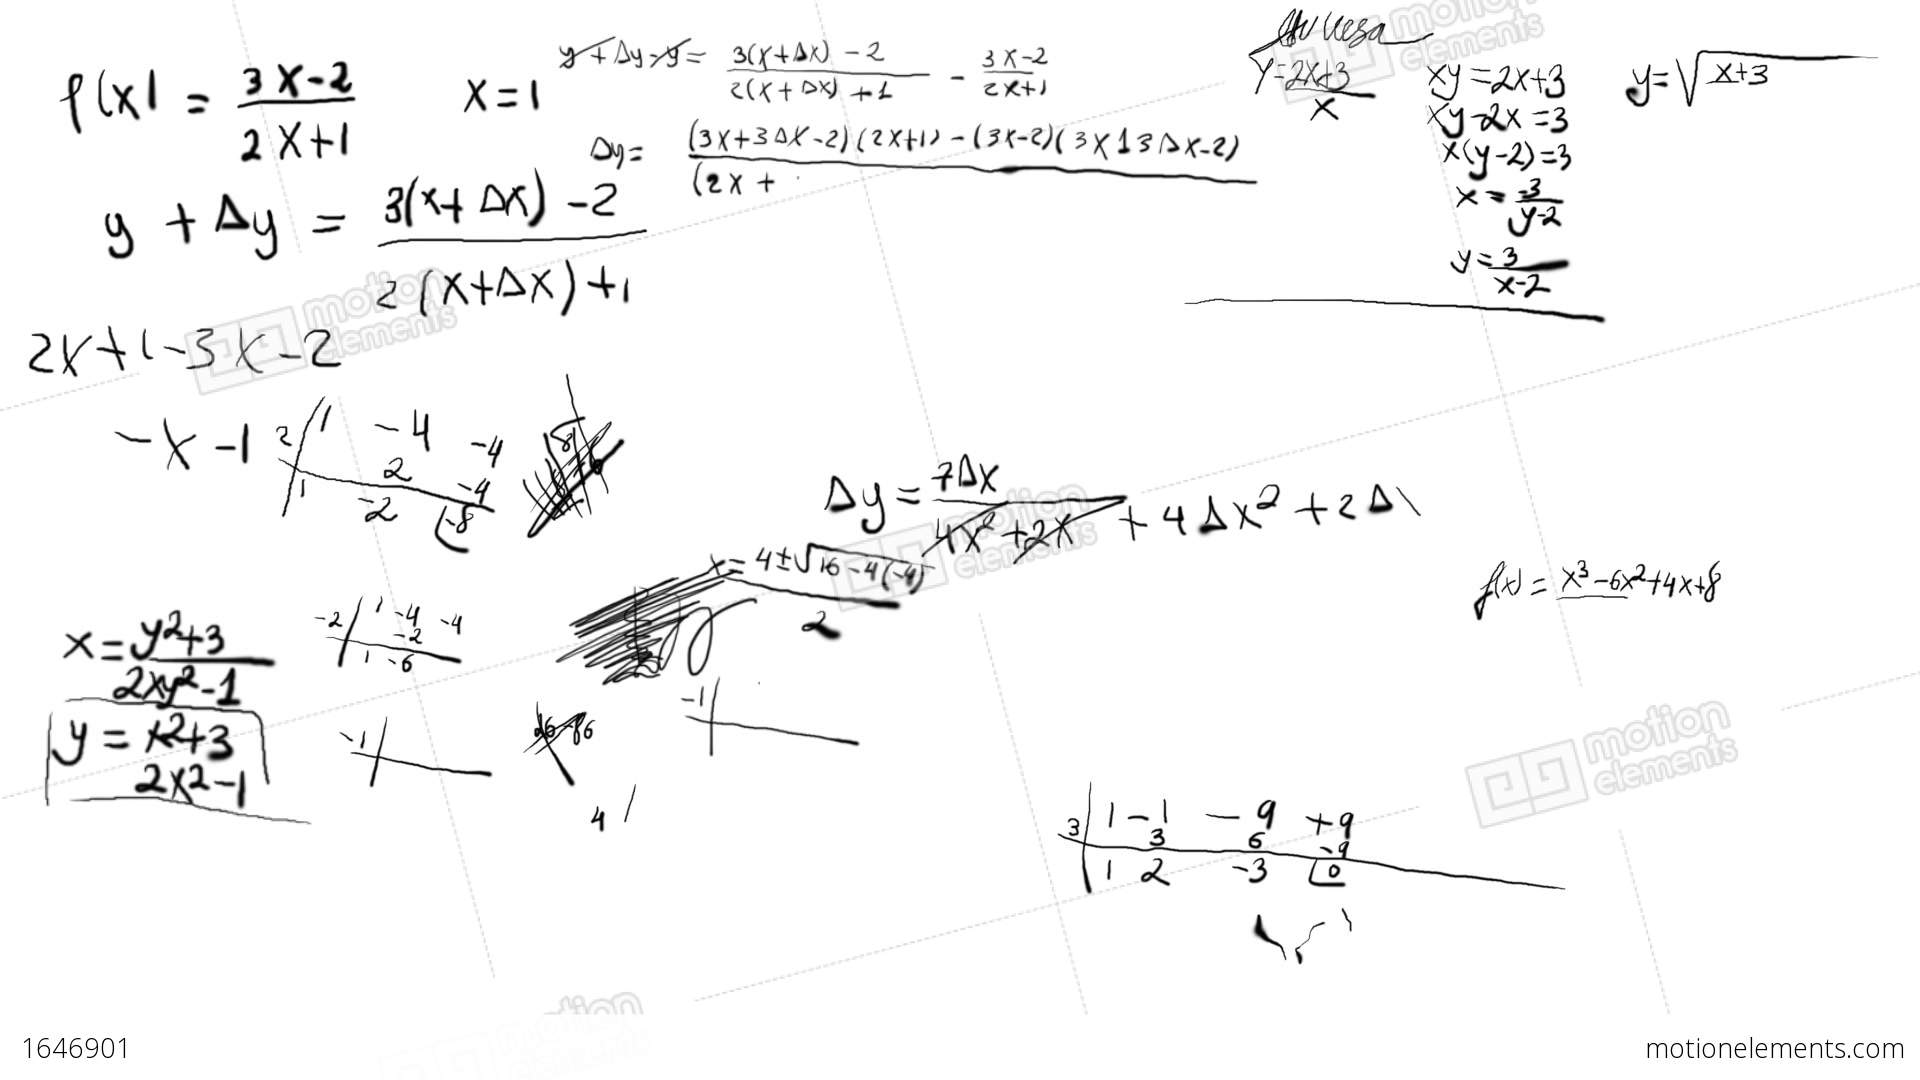 Math equations scribbling design element stock animation 1646901 math equations scribbling design element stock video footage biocorpaavc Image collections